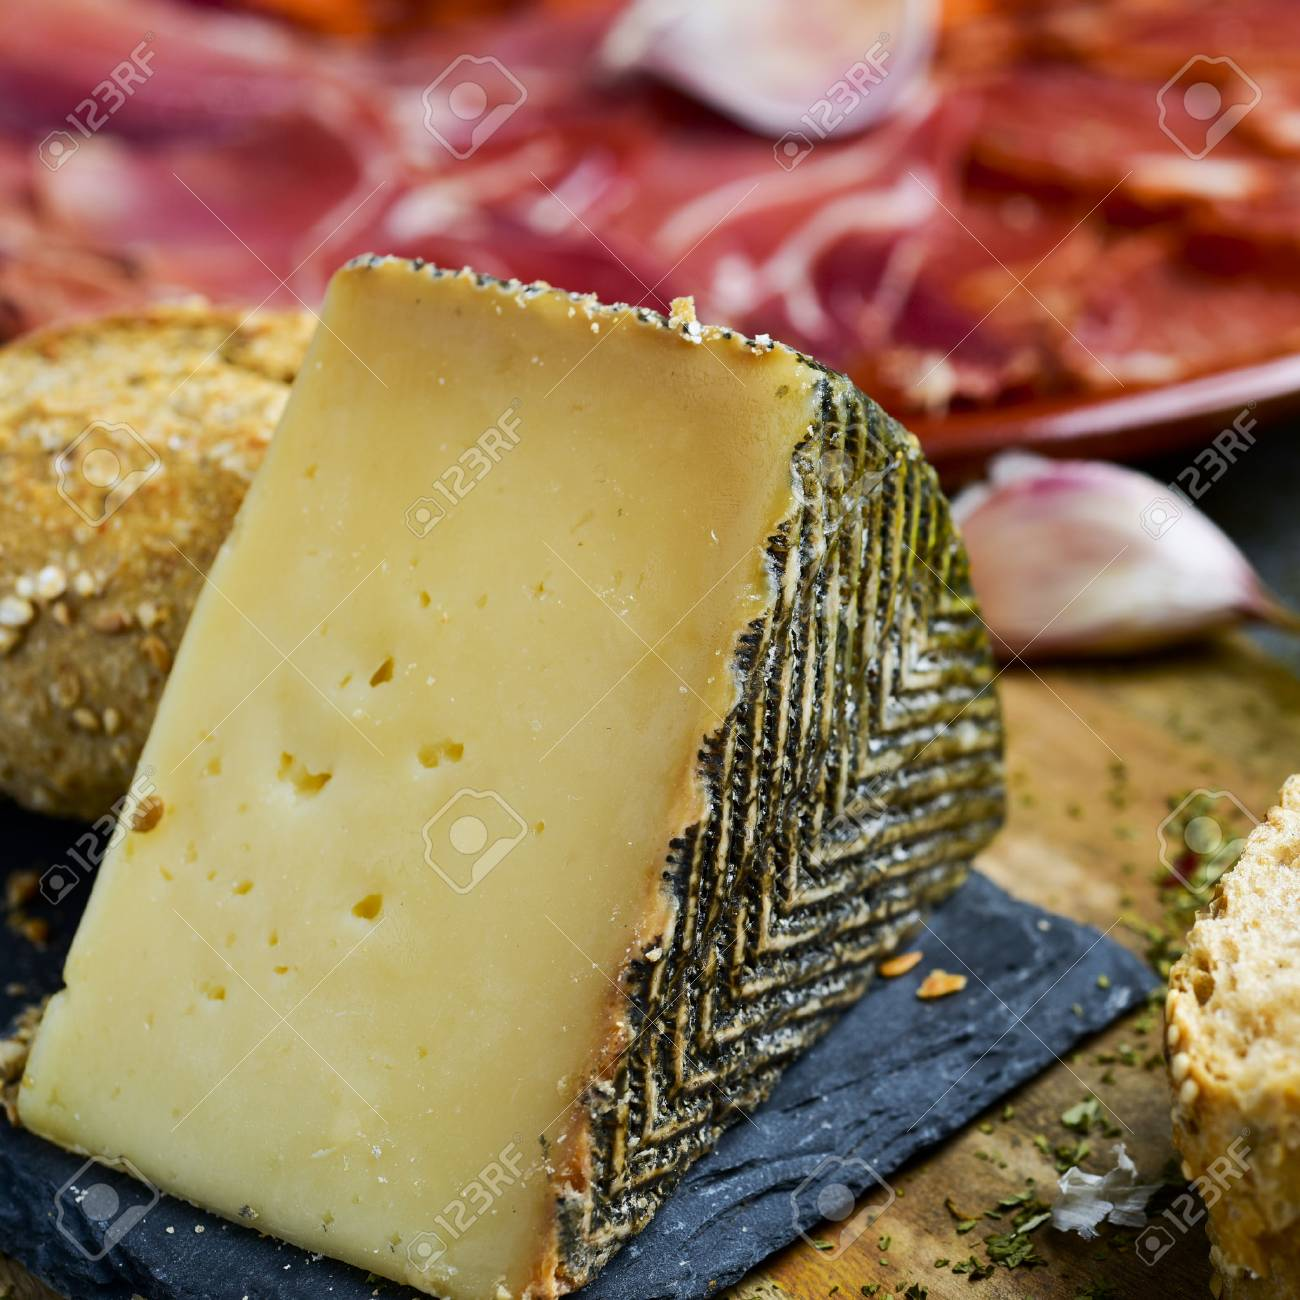 closeup of a piece of manchego cheese, and a plate with an assortment of different spanish cold meats as chorizo, cured pork tenderloin and serrano ham in the background - 80717398